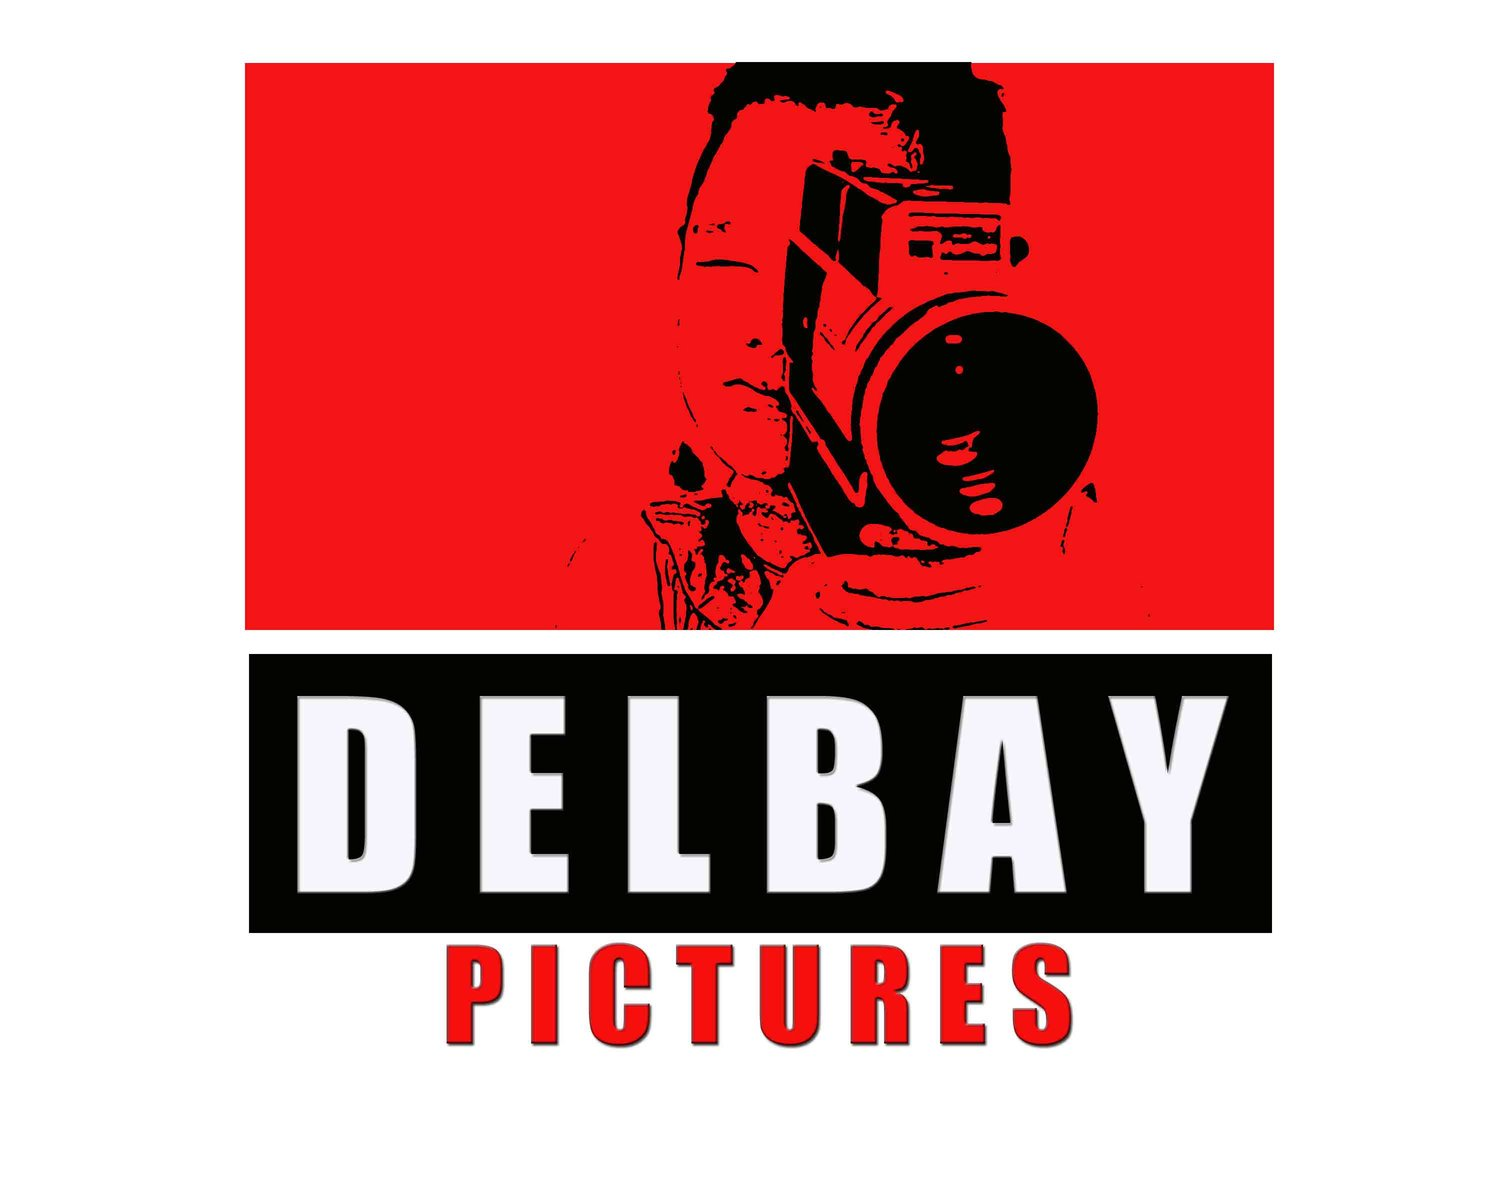 DELBAY PICTURES